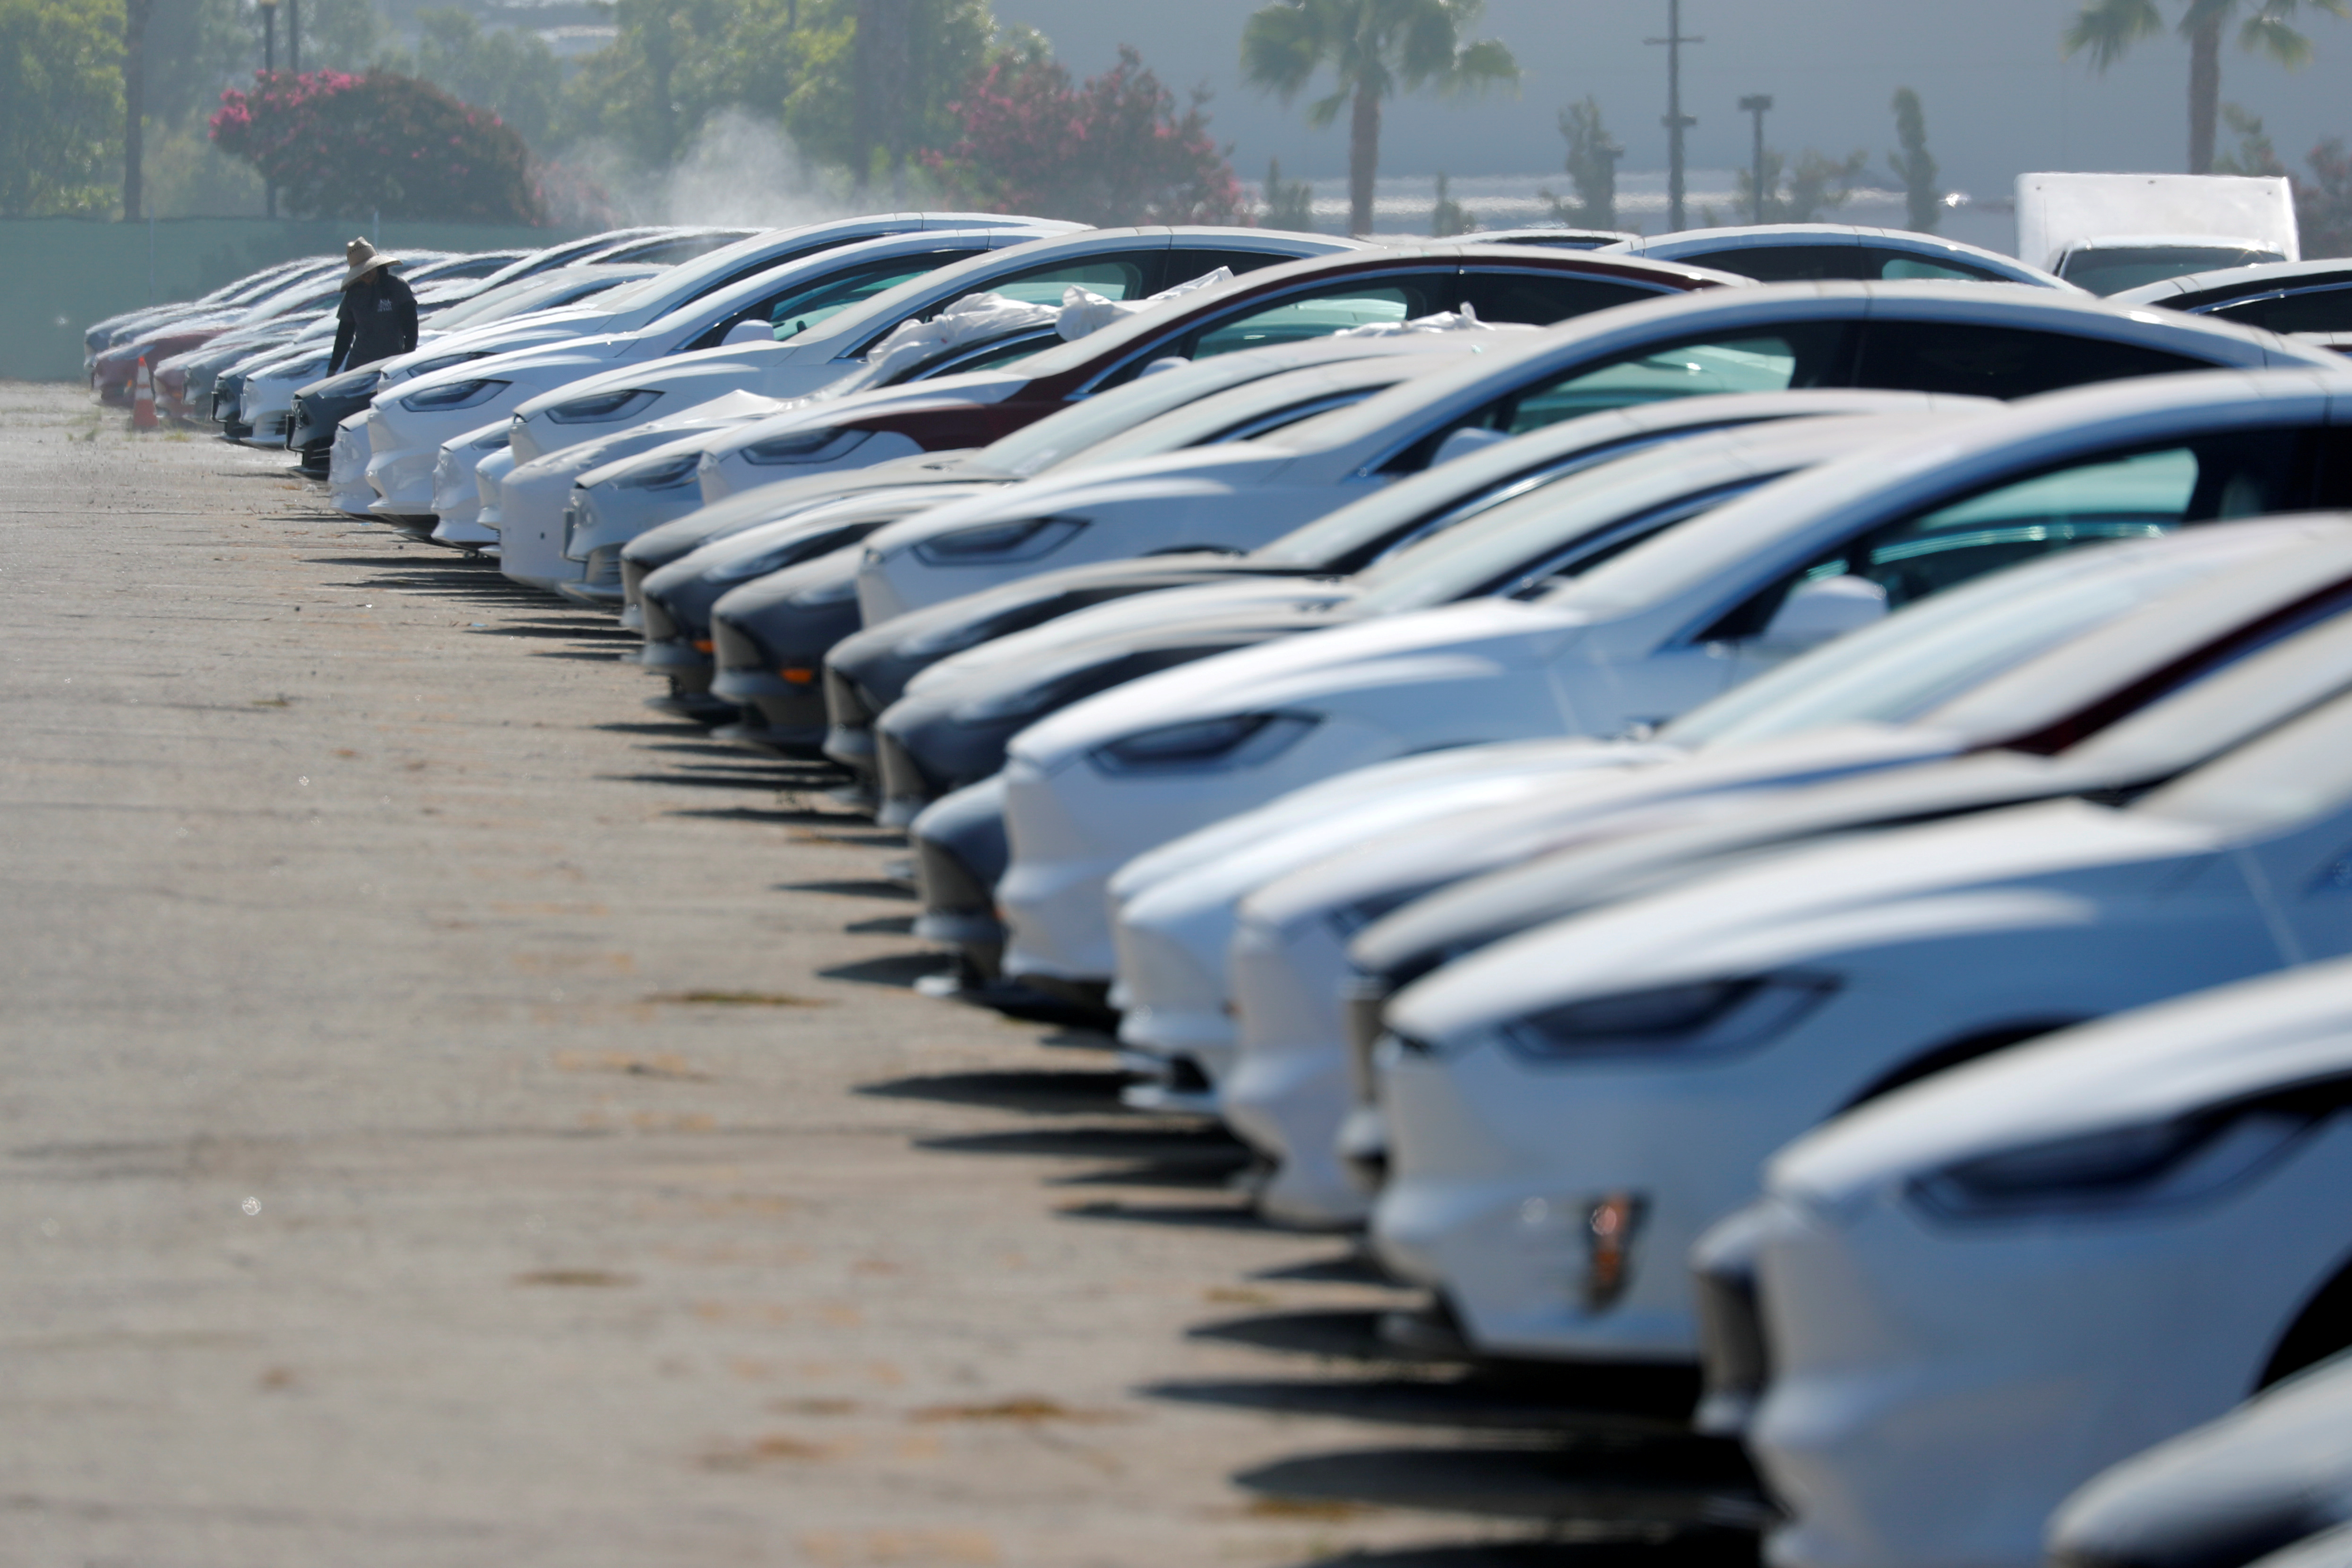 Newly manufactured Tesla vehicles are shown parked in a large lot next to the airport in Burbank, California, U.S. August 24, 2018. REUTERS/Mike Blake/File Photo